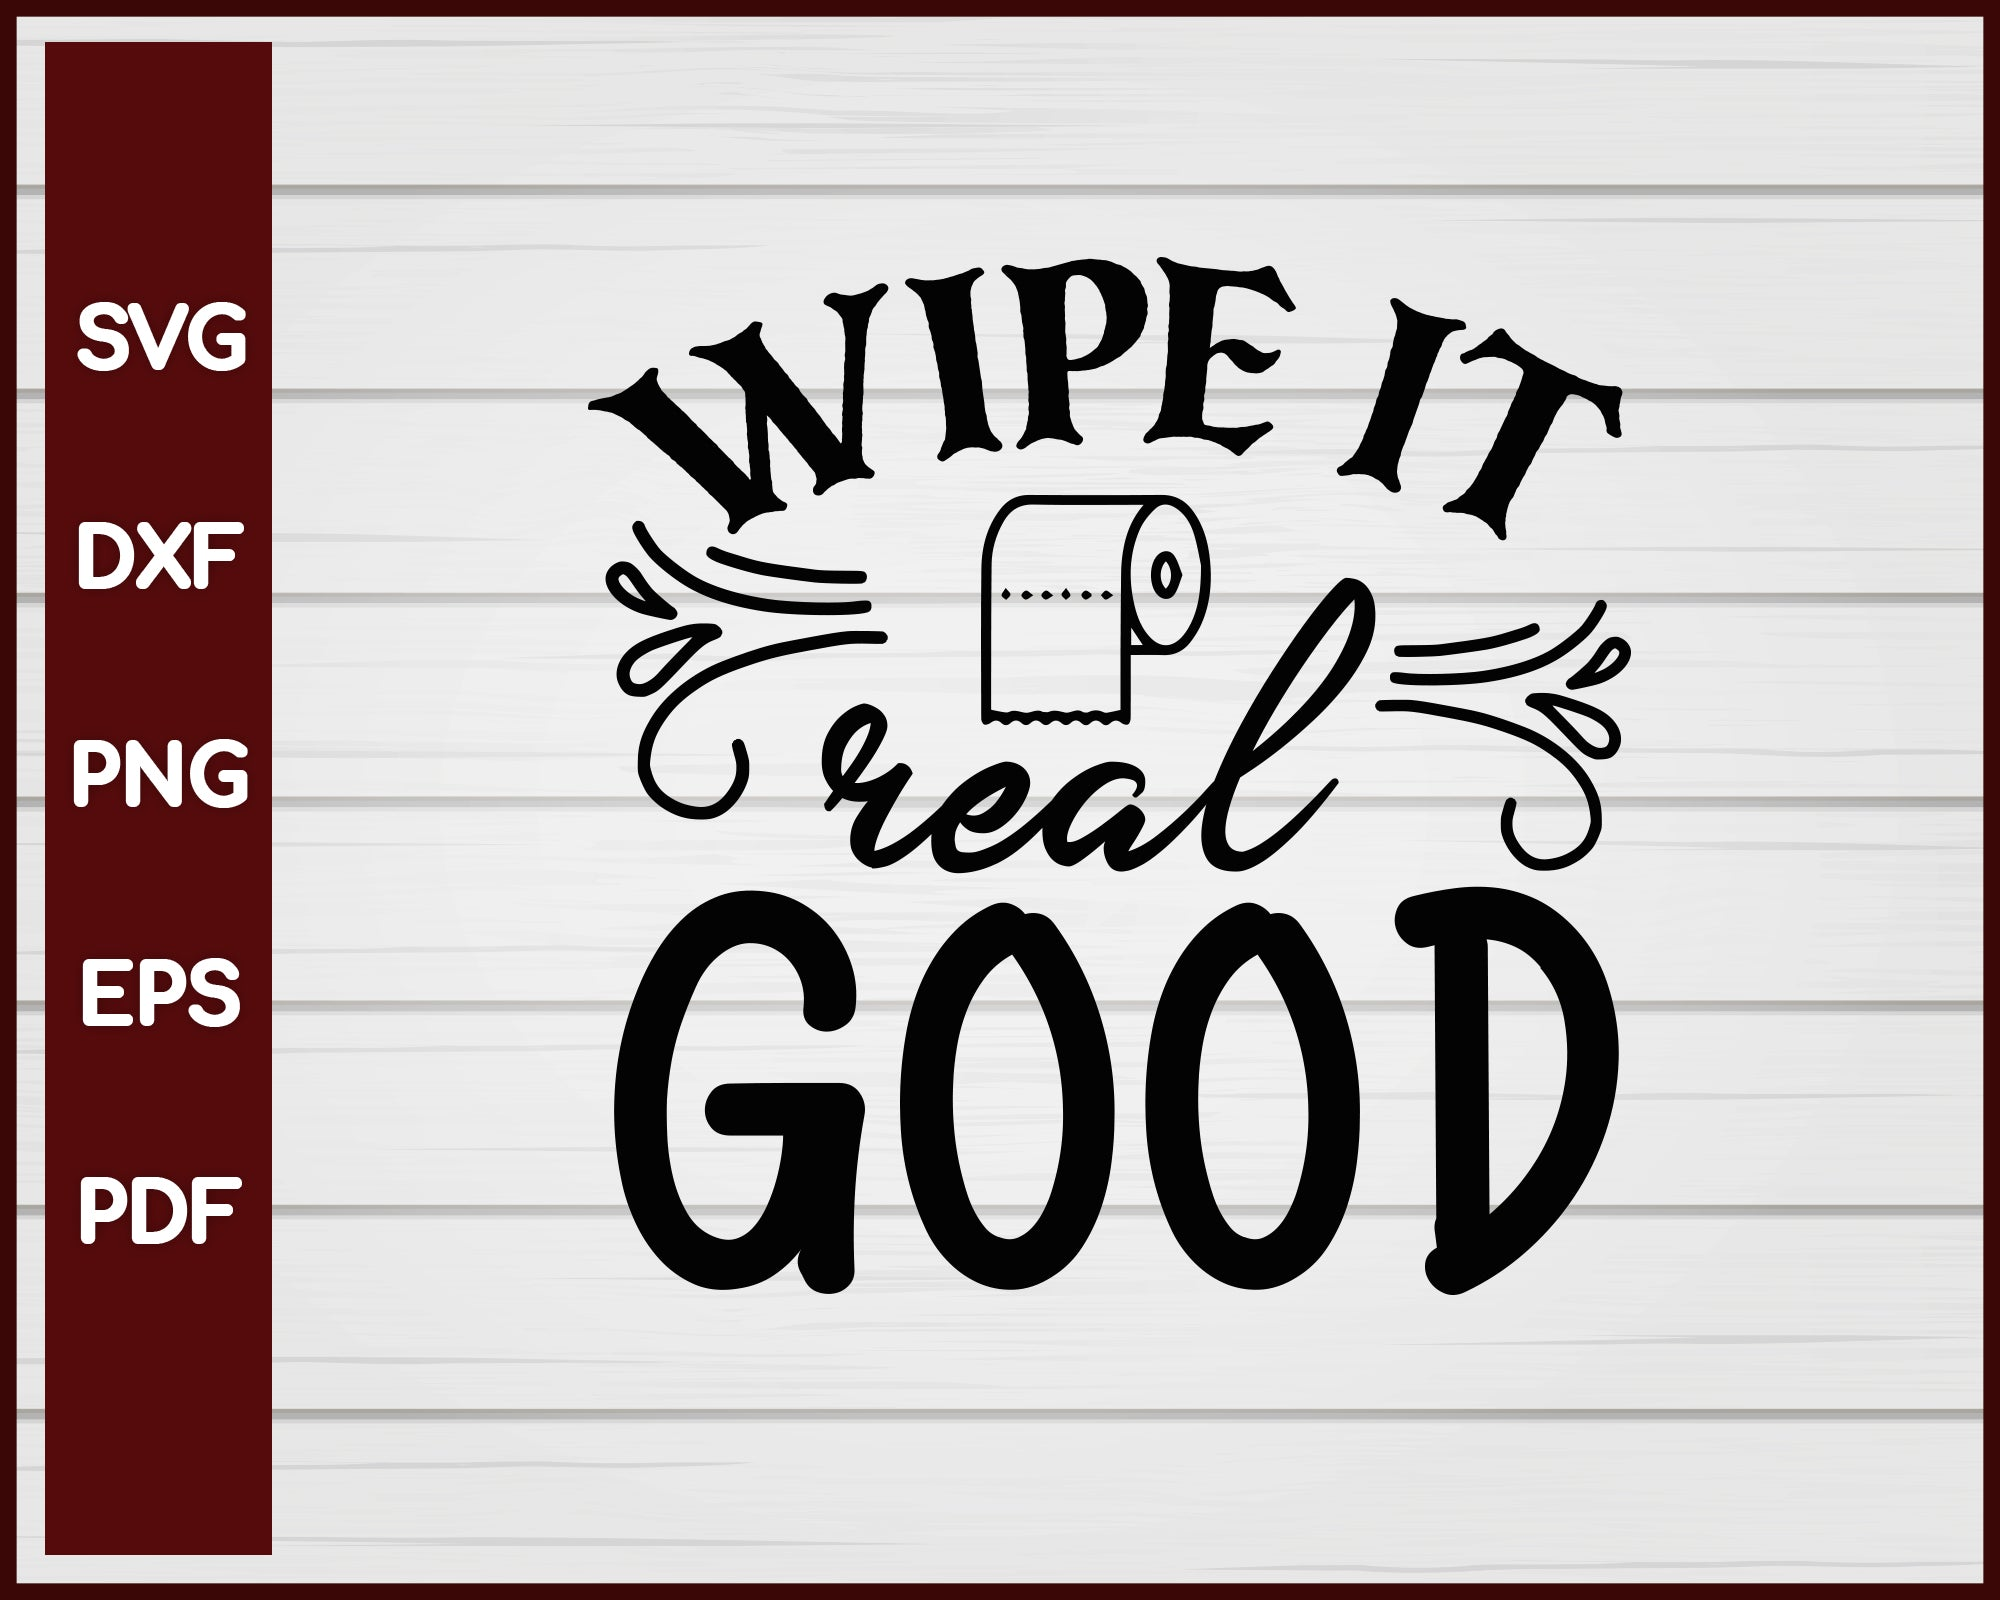 Wipe It Real Good svg Cut File For Cricut Silhouette eps png dxf Printable Files